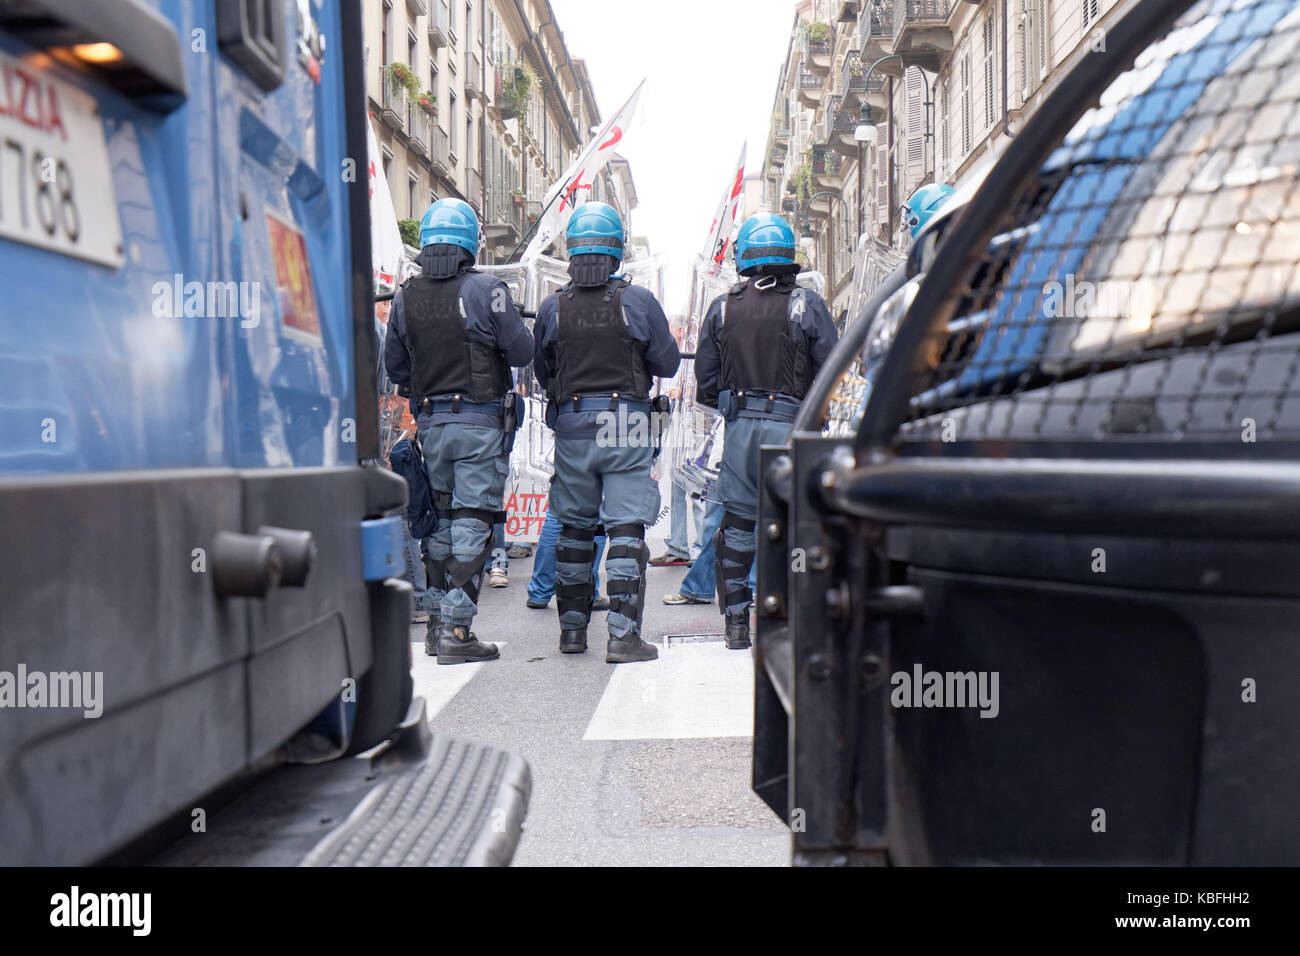 Torino, Italy. 29th September 2017. Riot Police blocking 'No TAV' (No-HSR) demonstrators during a student rally Stock Photo